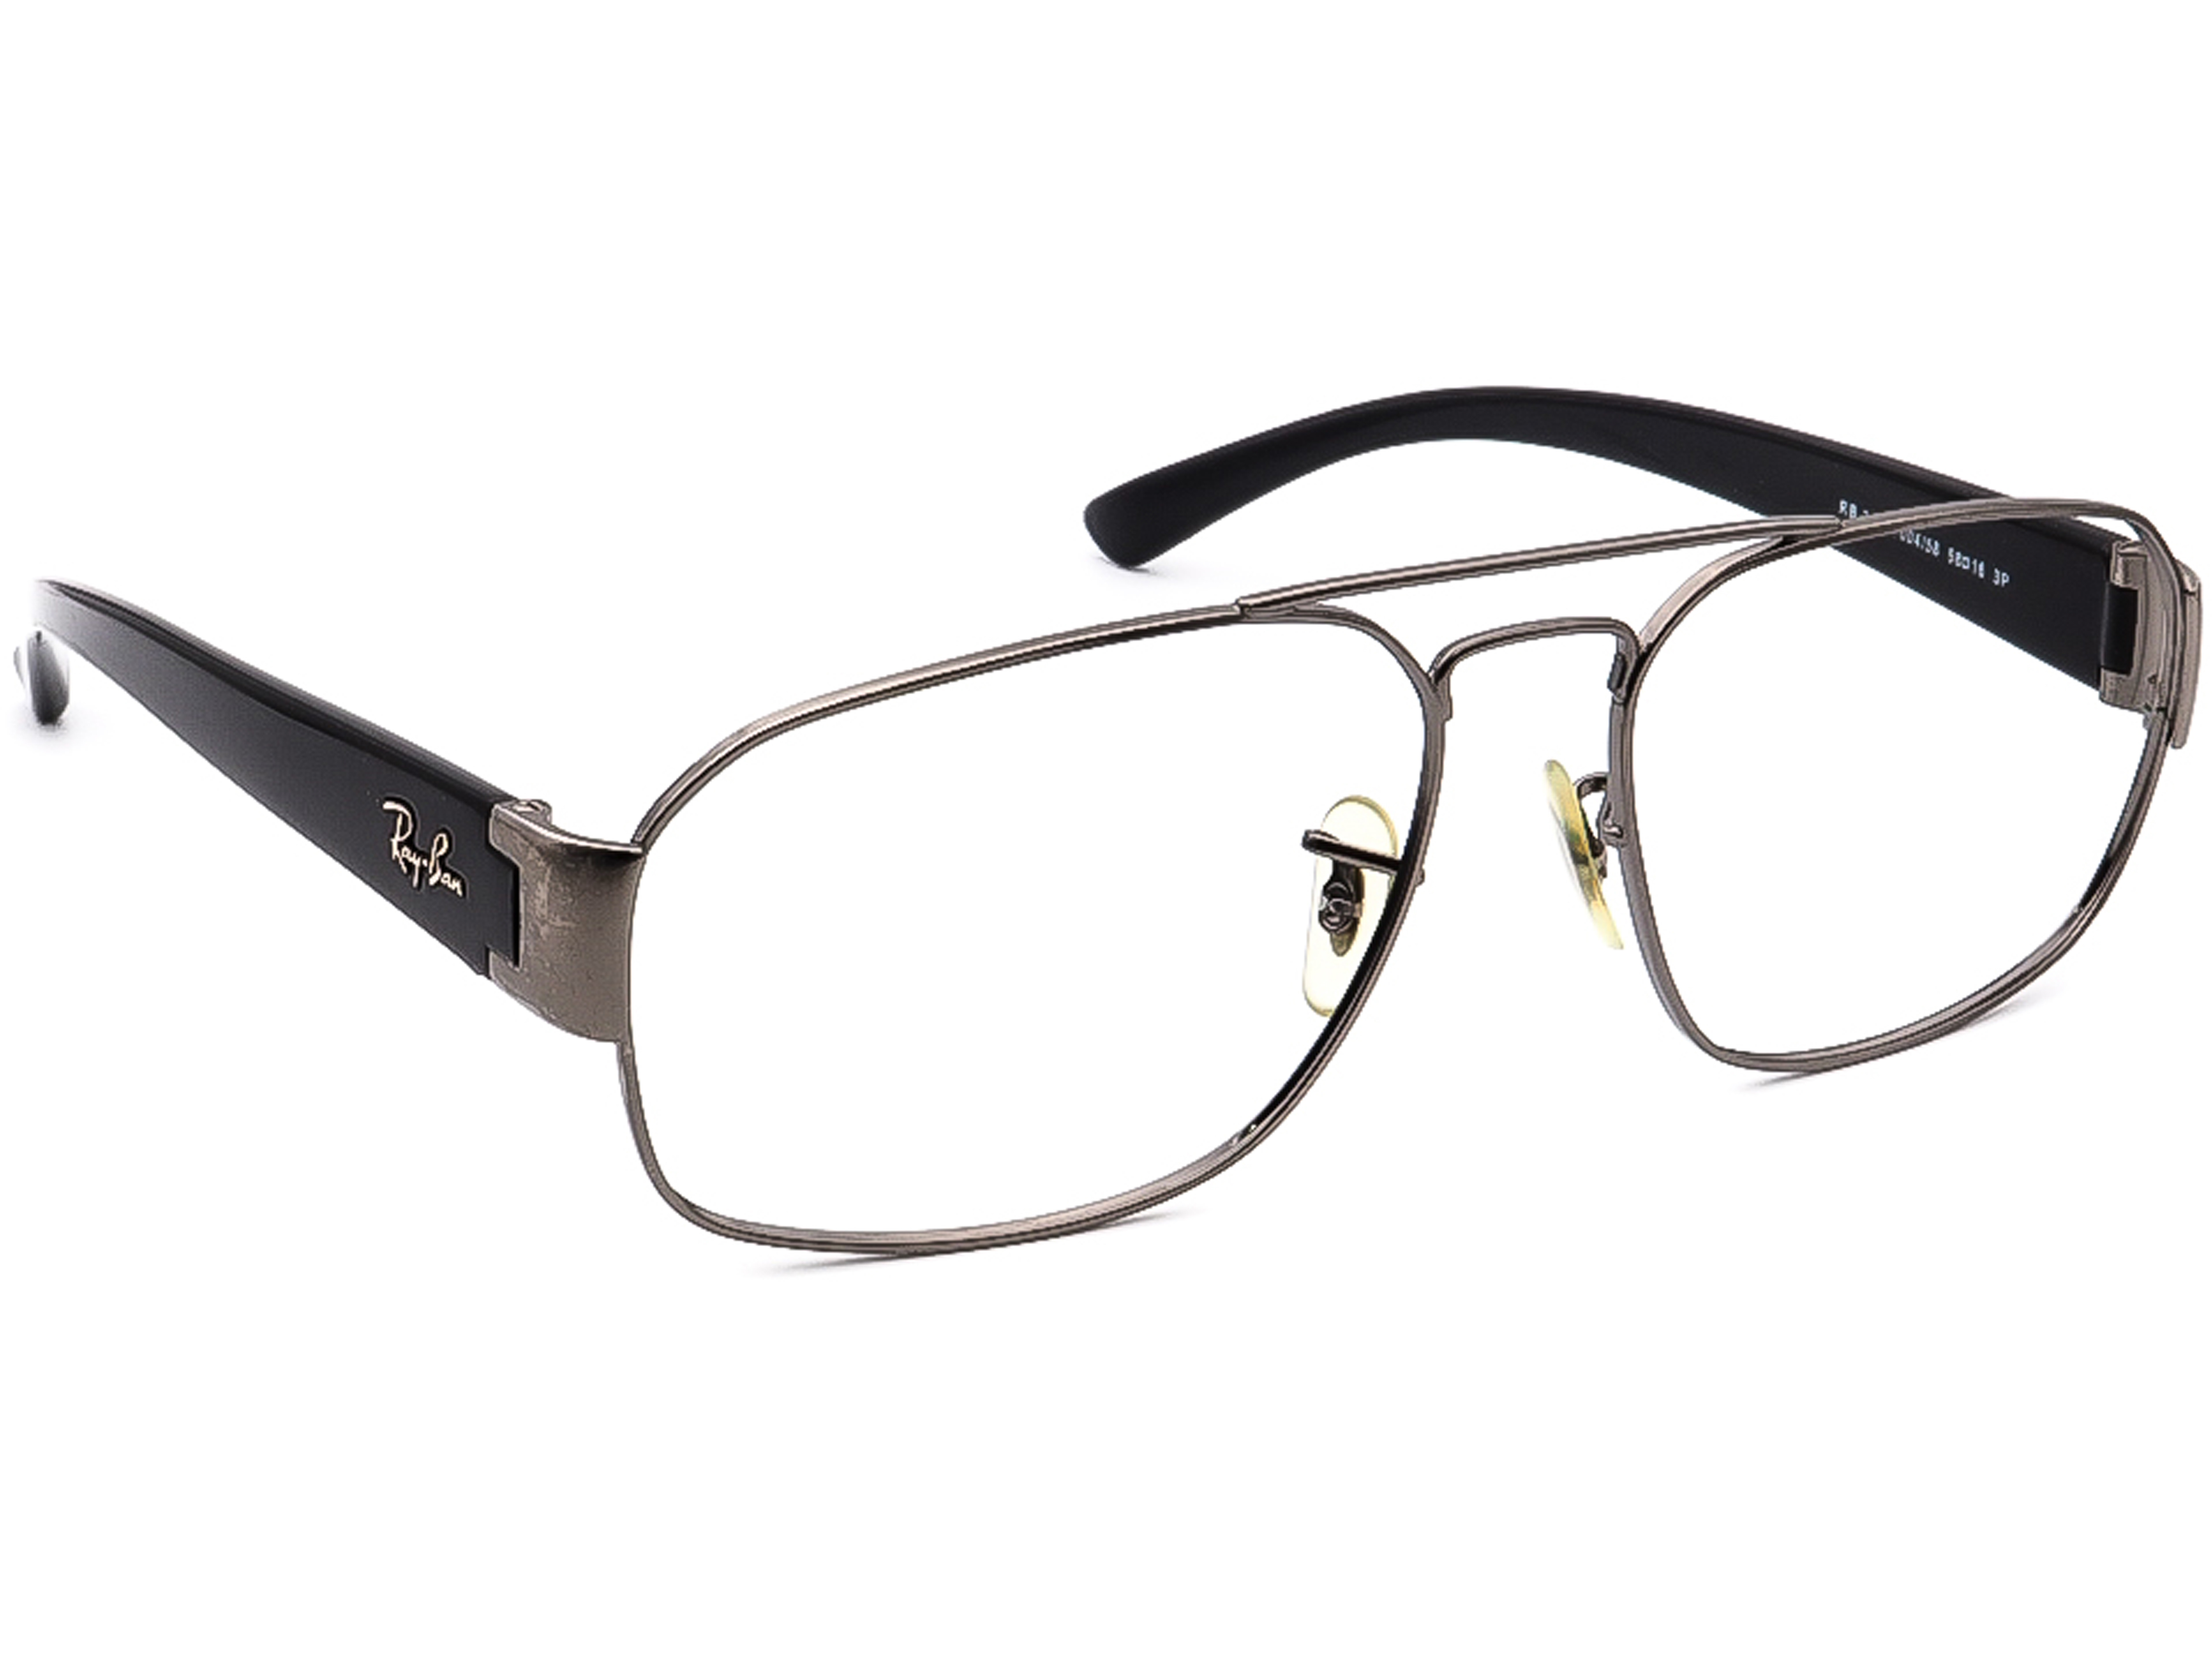 Ray Ban RB 3427 004/58 Sunglasses Frame Only